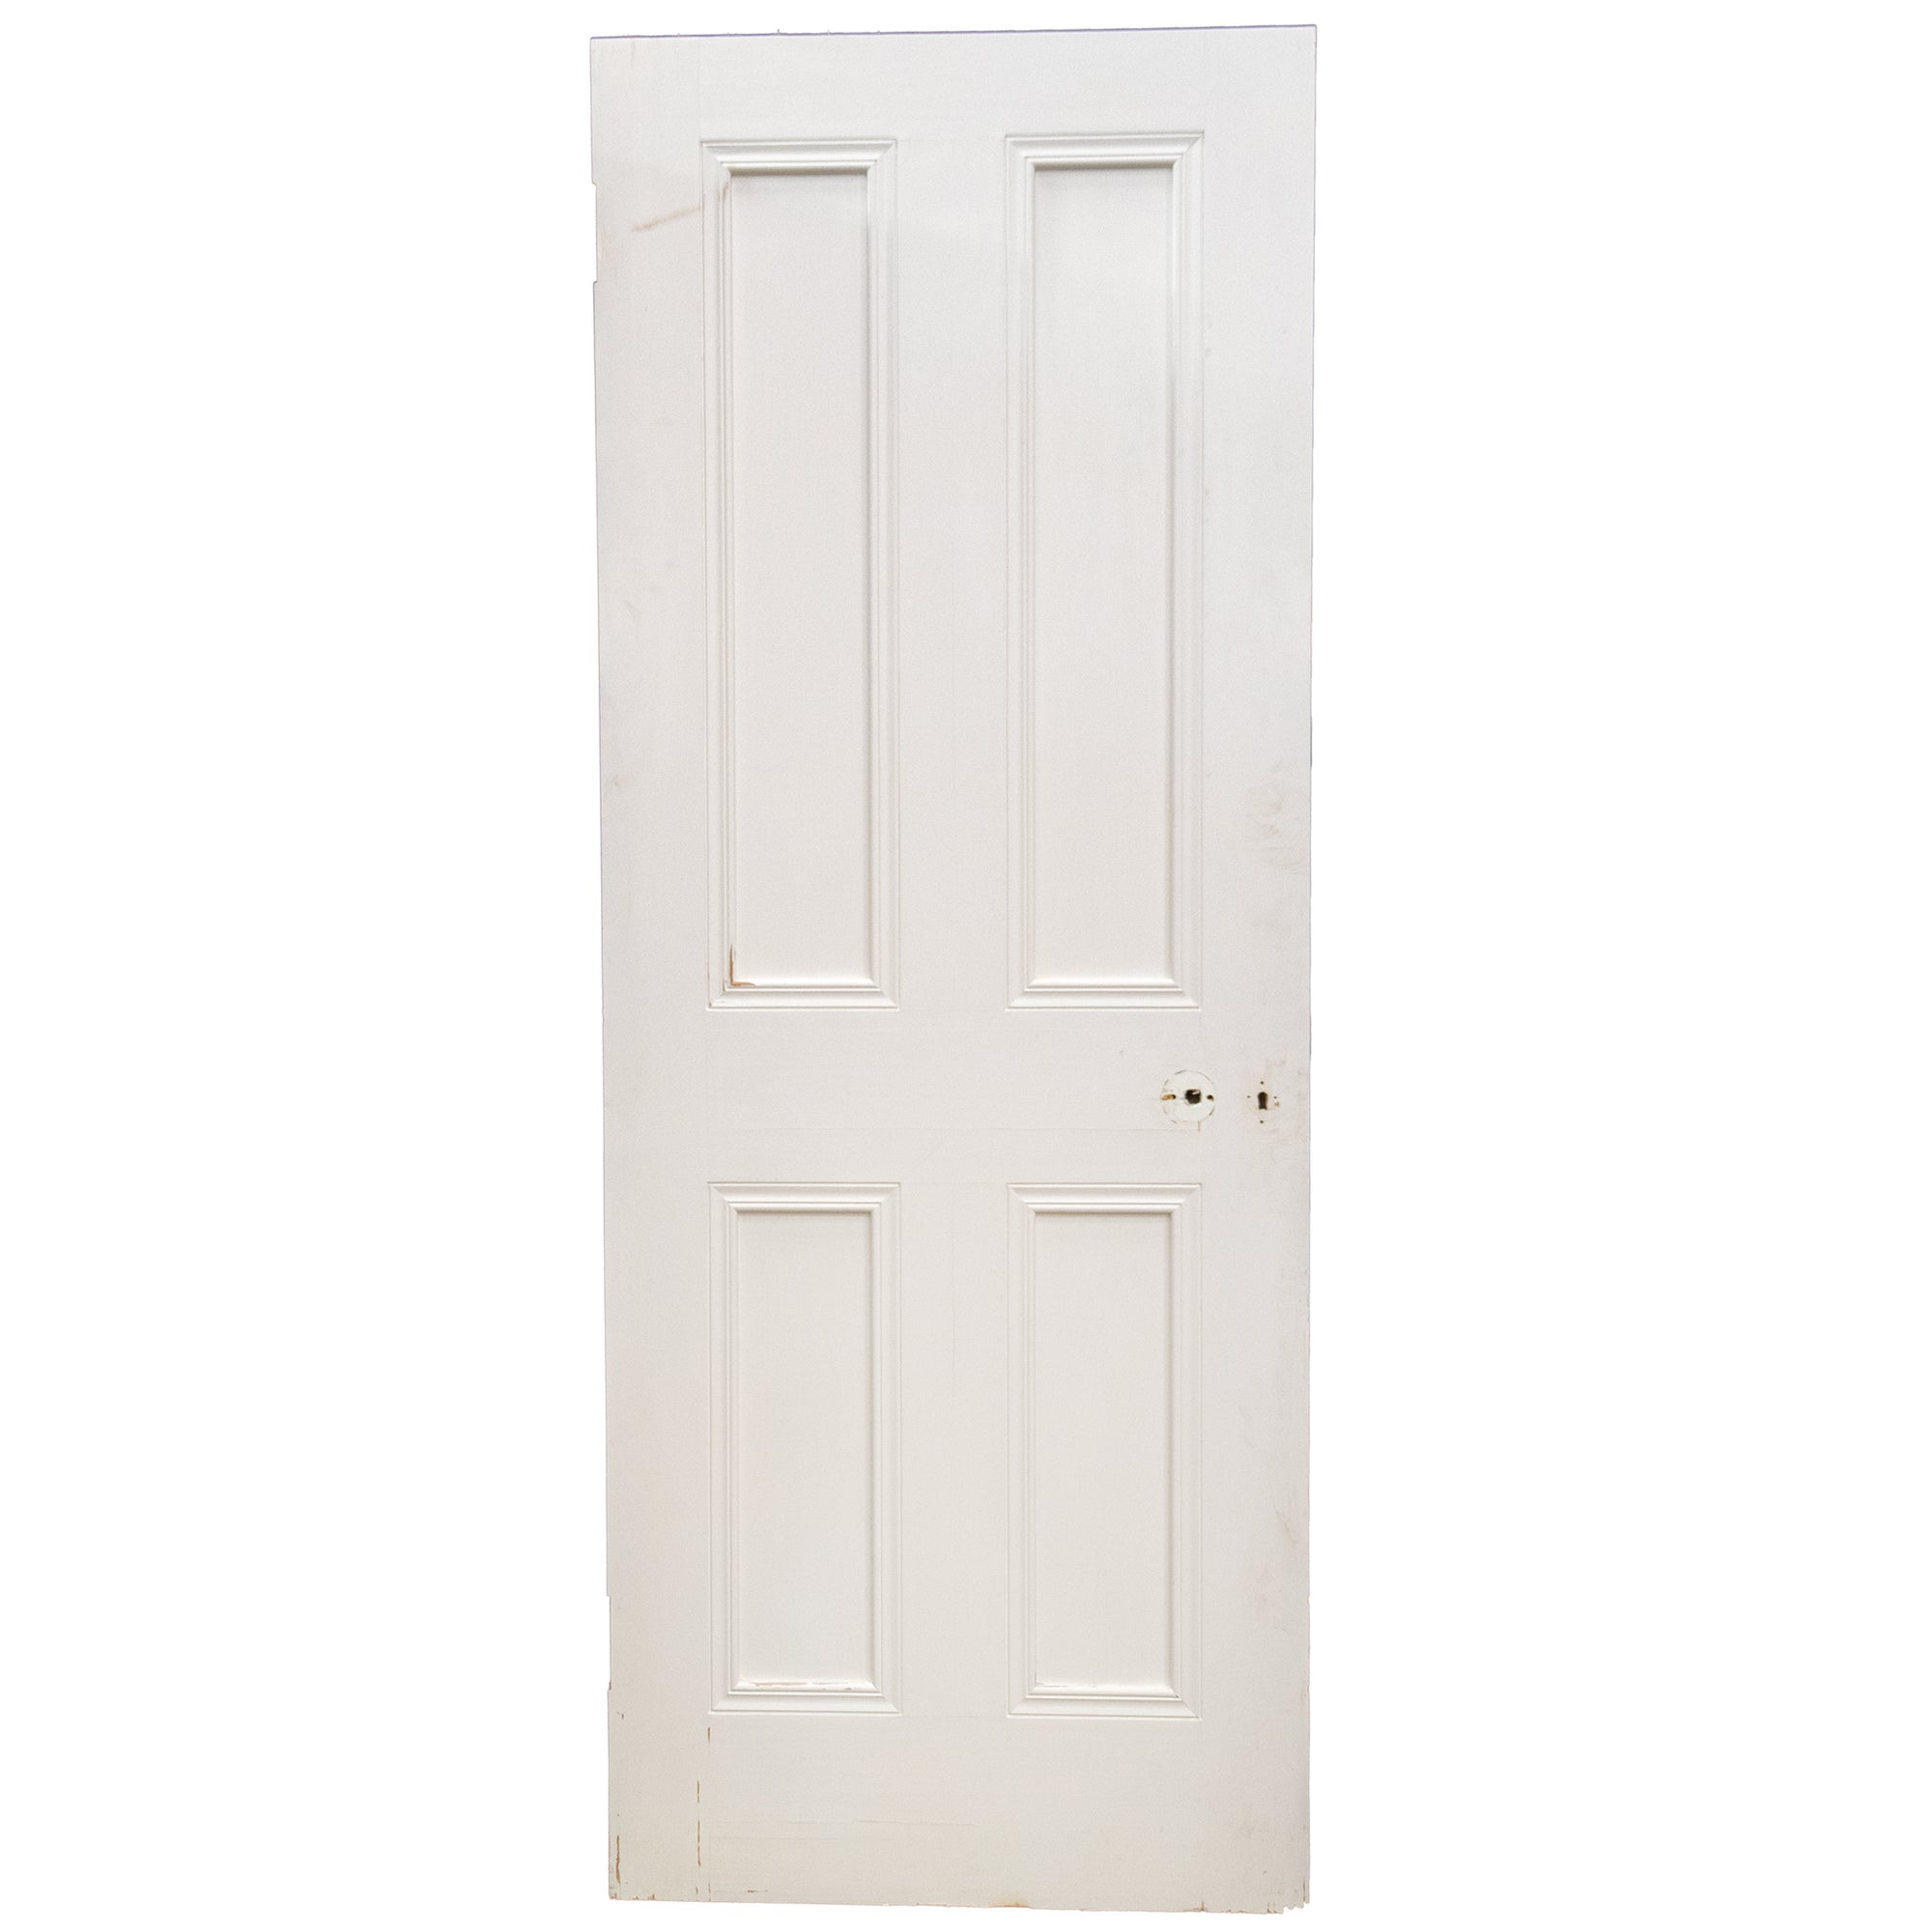 Reclaimed Victorian Style 4 Panel Door - 198cm x 76.3cm